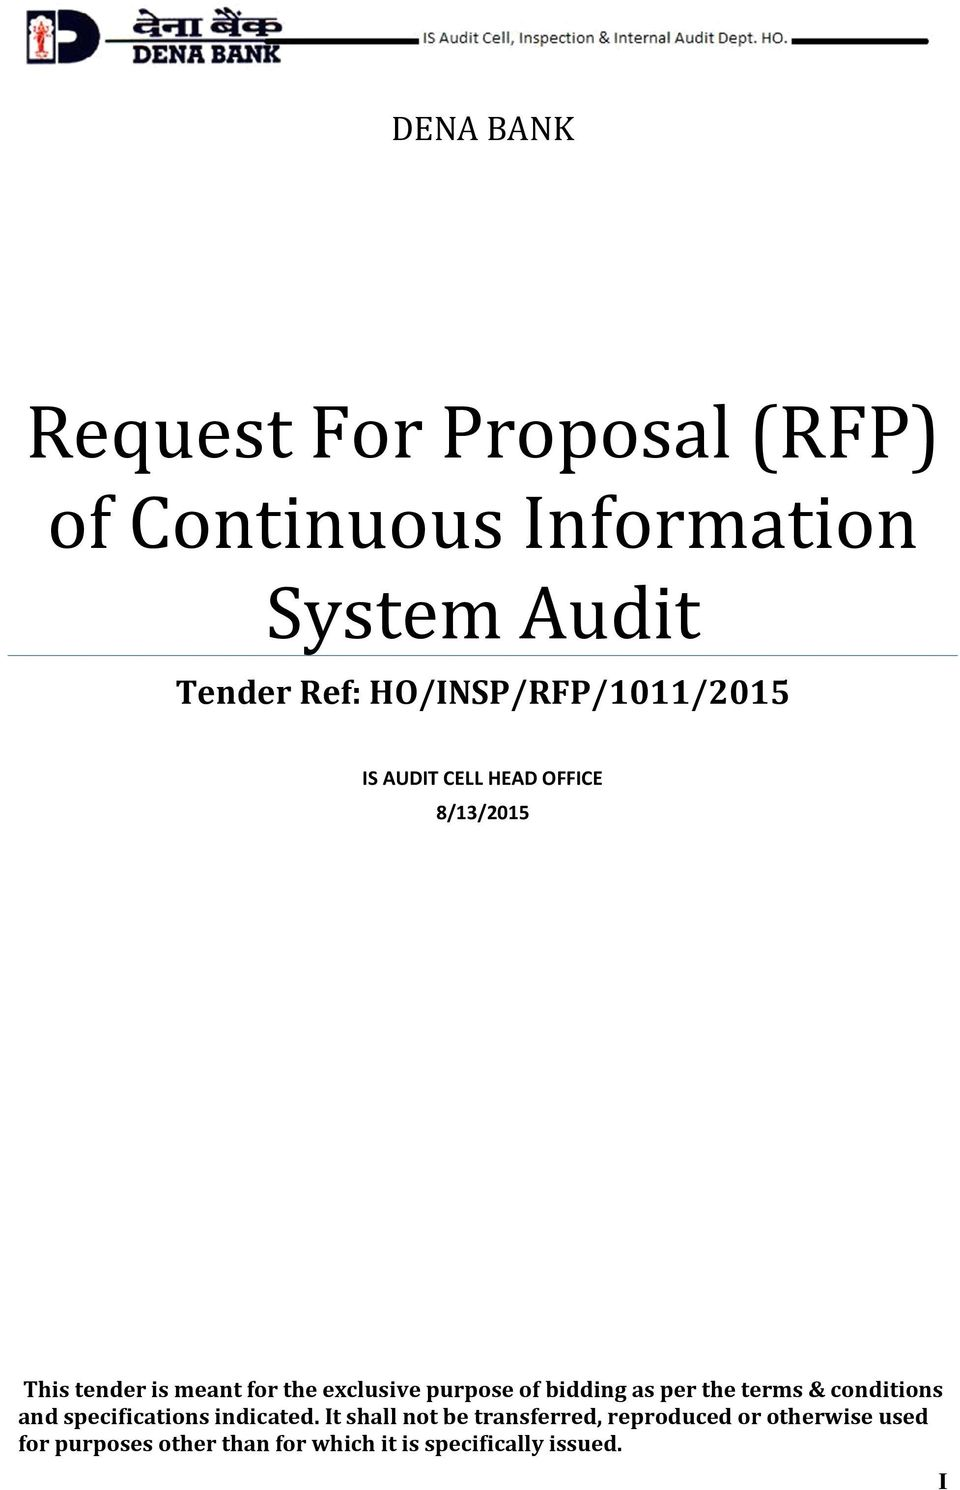 Request For Proposal (RFP) of Continuous Information System Audit - PDF